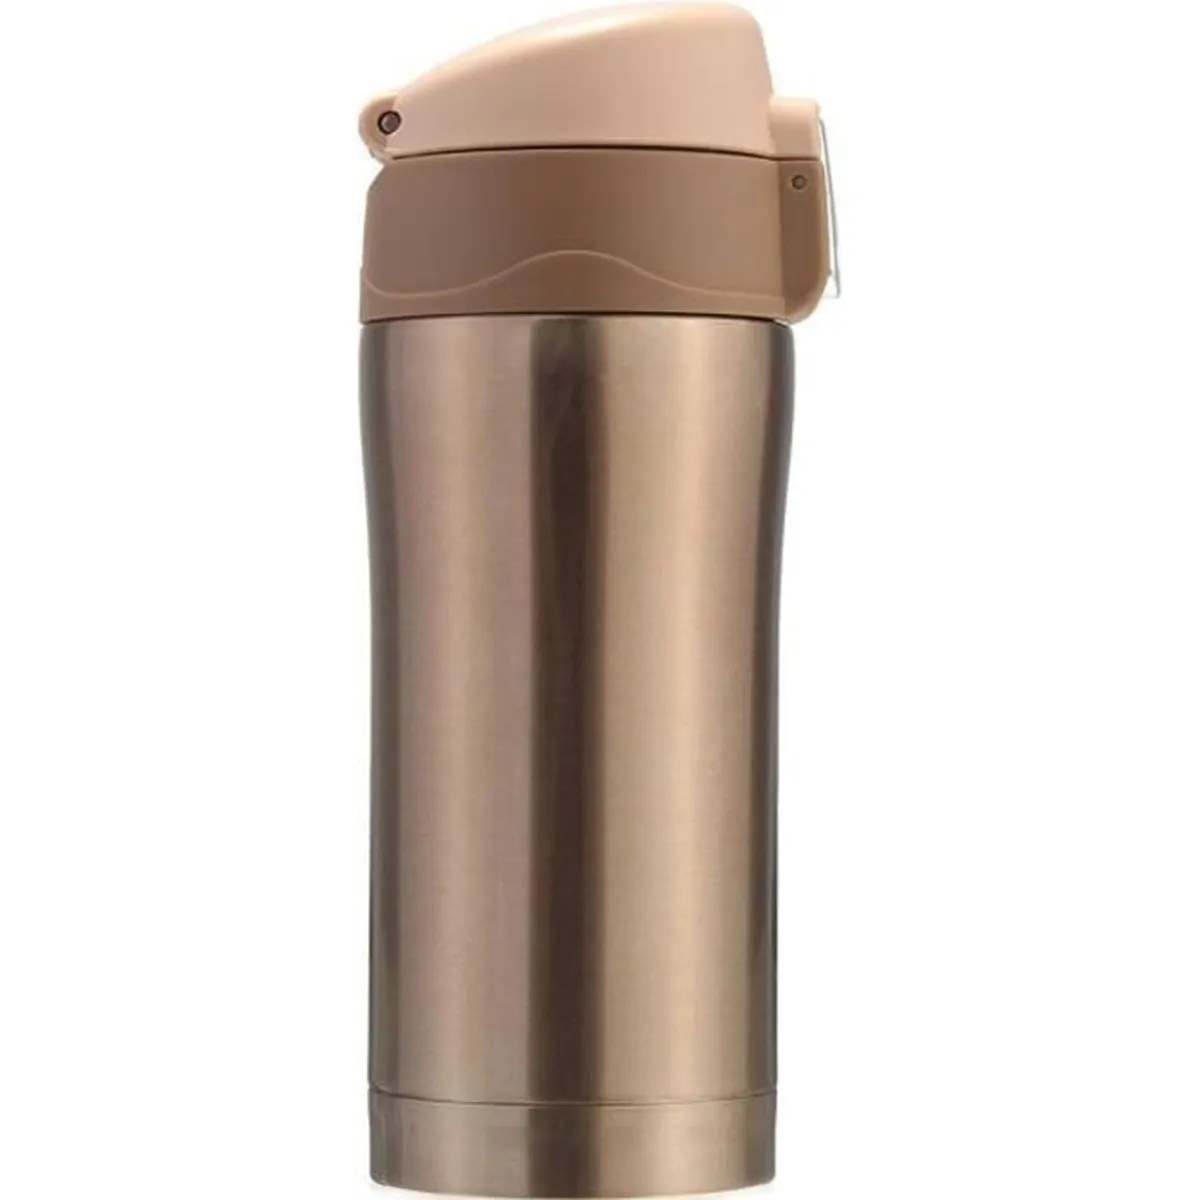 Thermos Cafe Thermos Tasse A Cafe Mug Achat Vente Thermos Tasse A